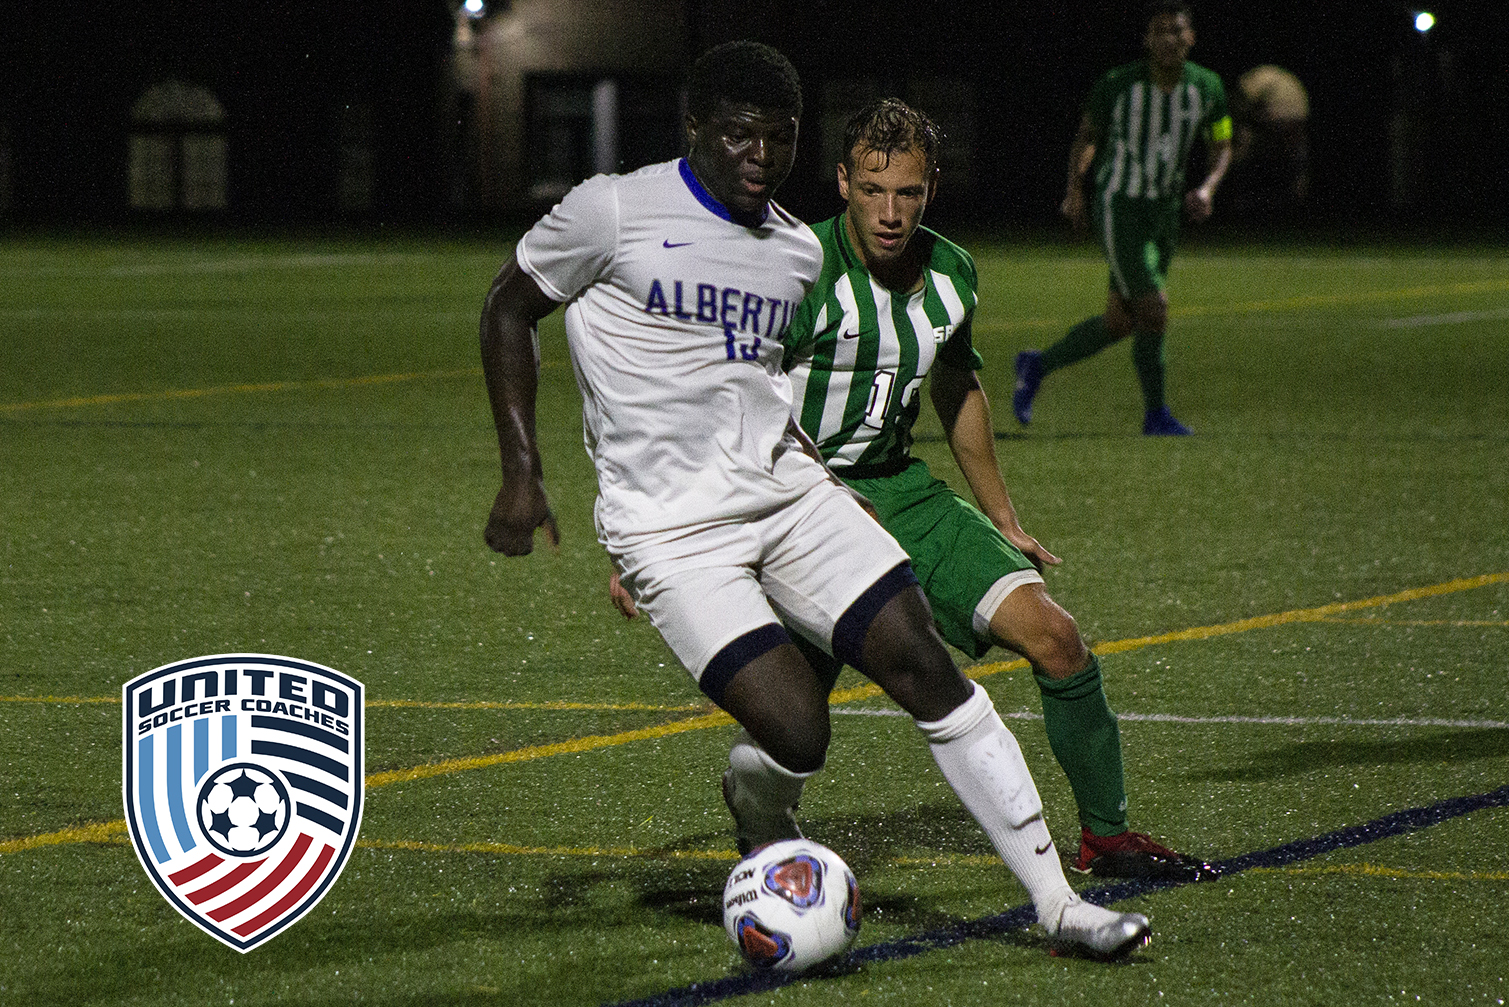 Oumorou Named to US Soccer Coaches All-New England Region Third Team